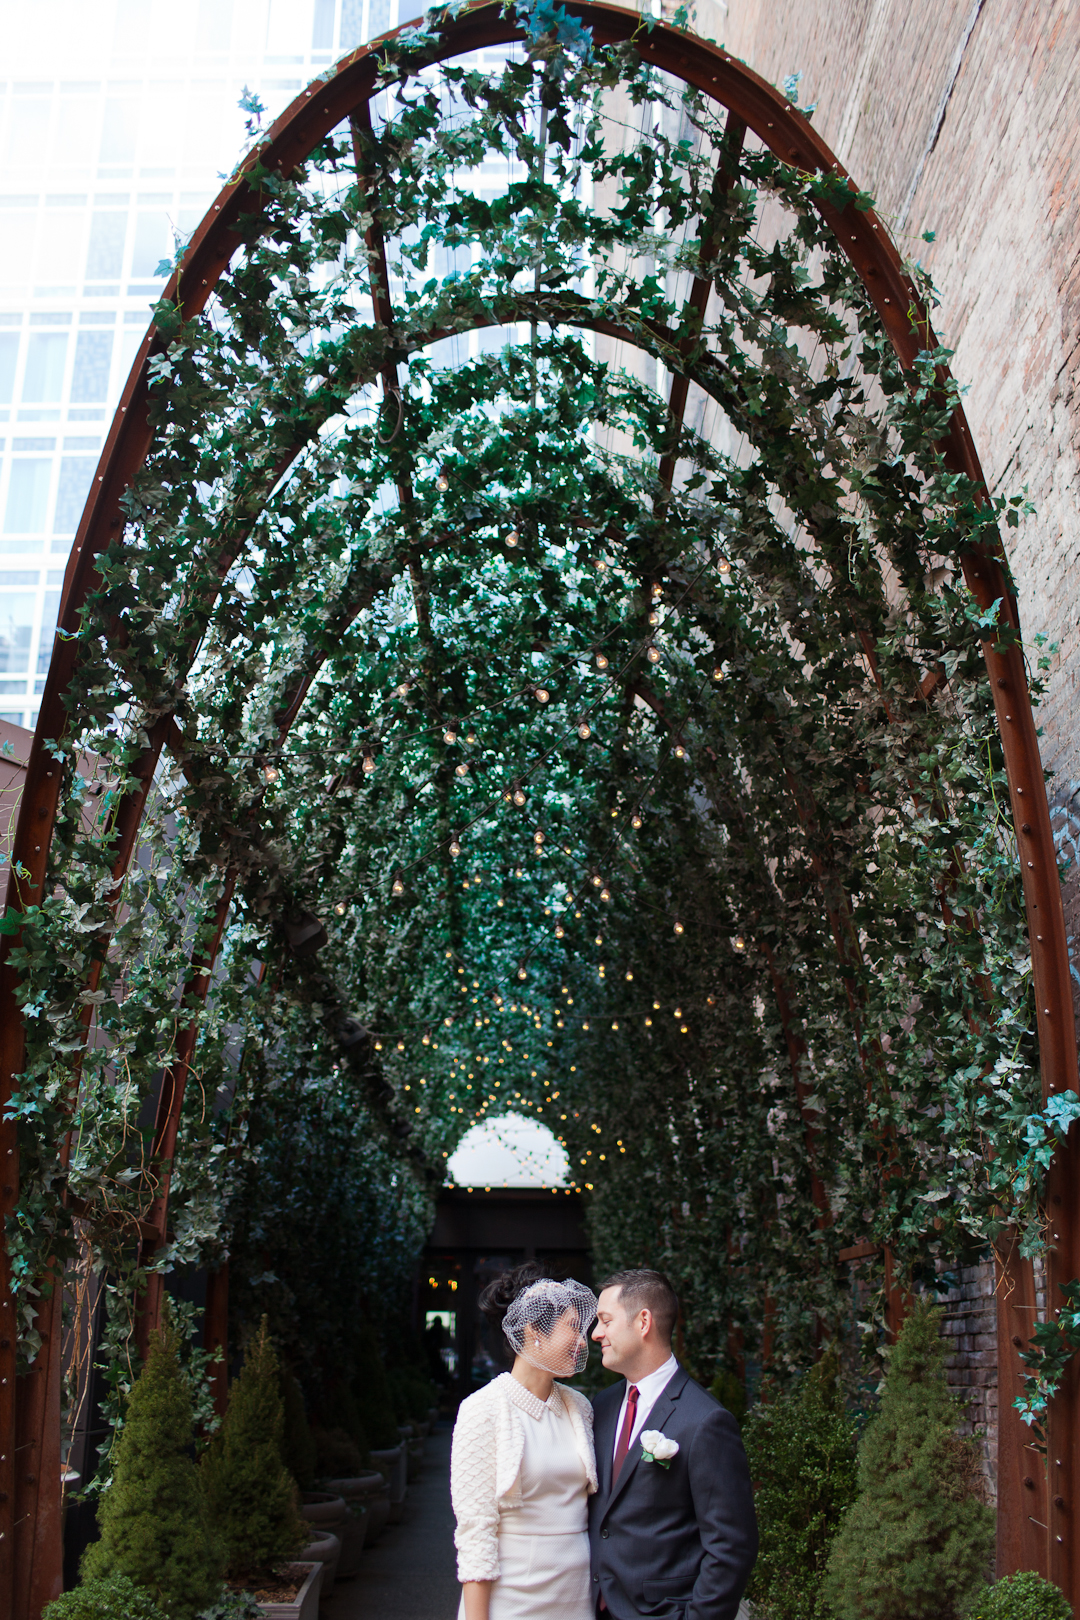 Melissa Kruse Photography - Melissa & Jared NYC City Hall Elopement (web)-59.jpg